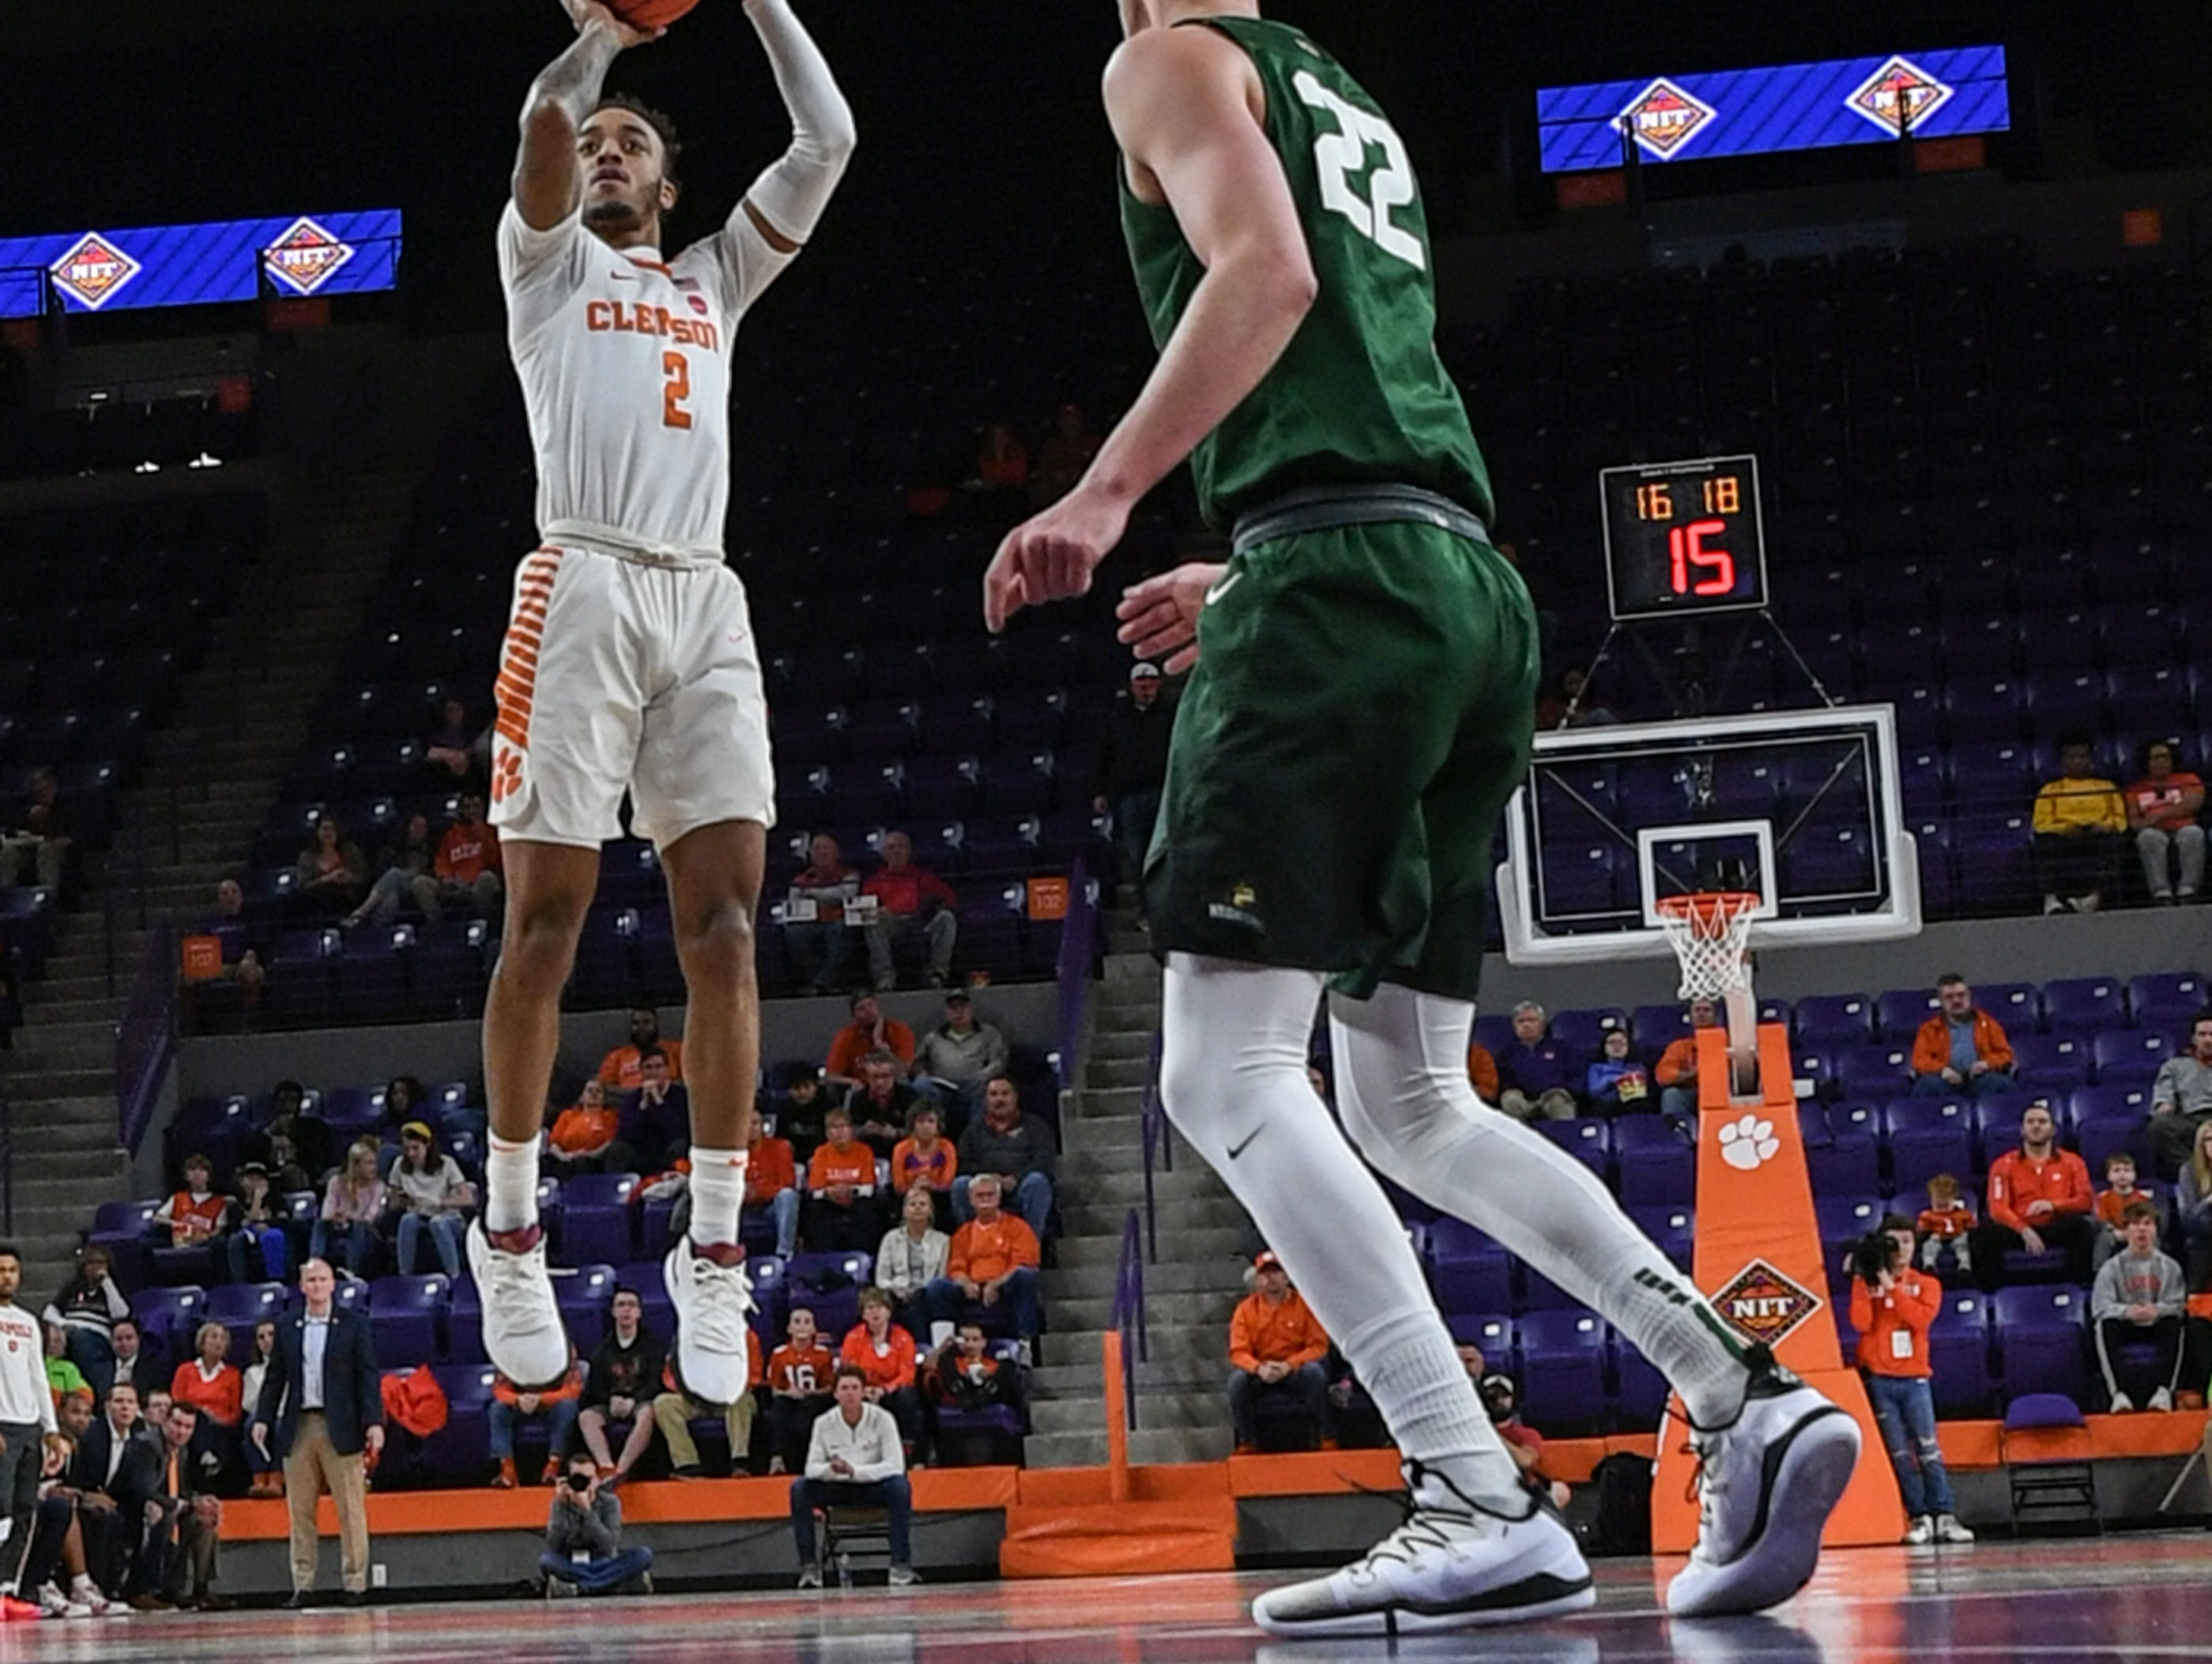 Clemson guard Marcquise Reed (2) shoots near Wright State center Parker Ernsthausen(22) during the first half of the NIT at Littlejohn Coliseum in Clemson Tuesday, March 19, 2019.